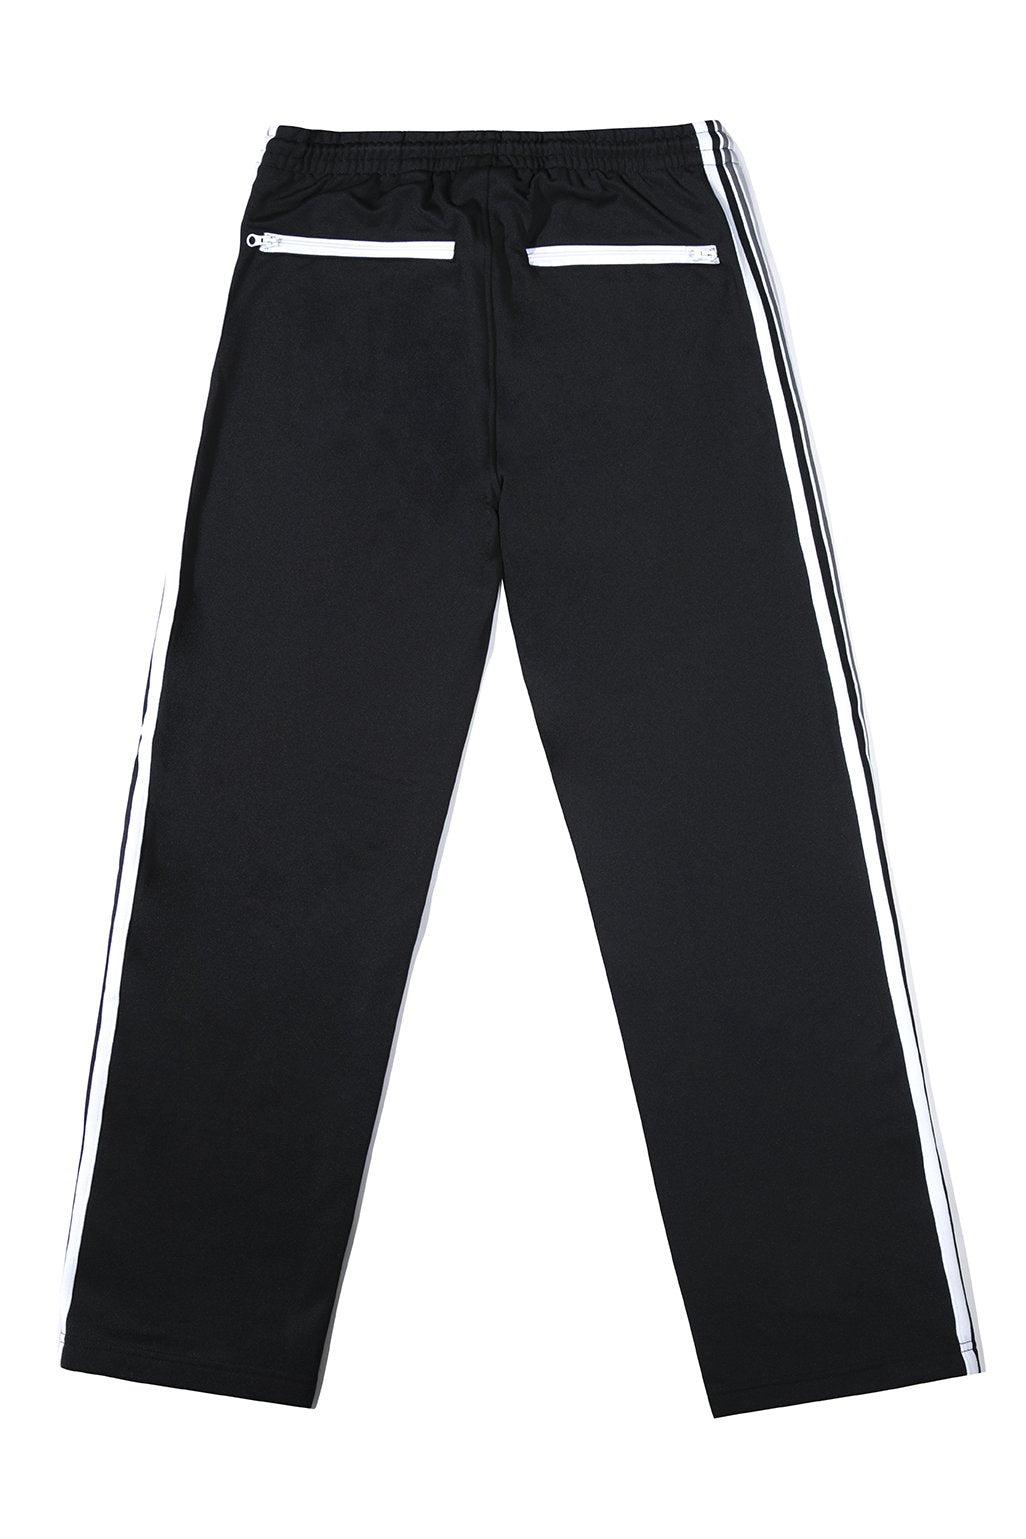 Gude Trackpants - Black